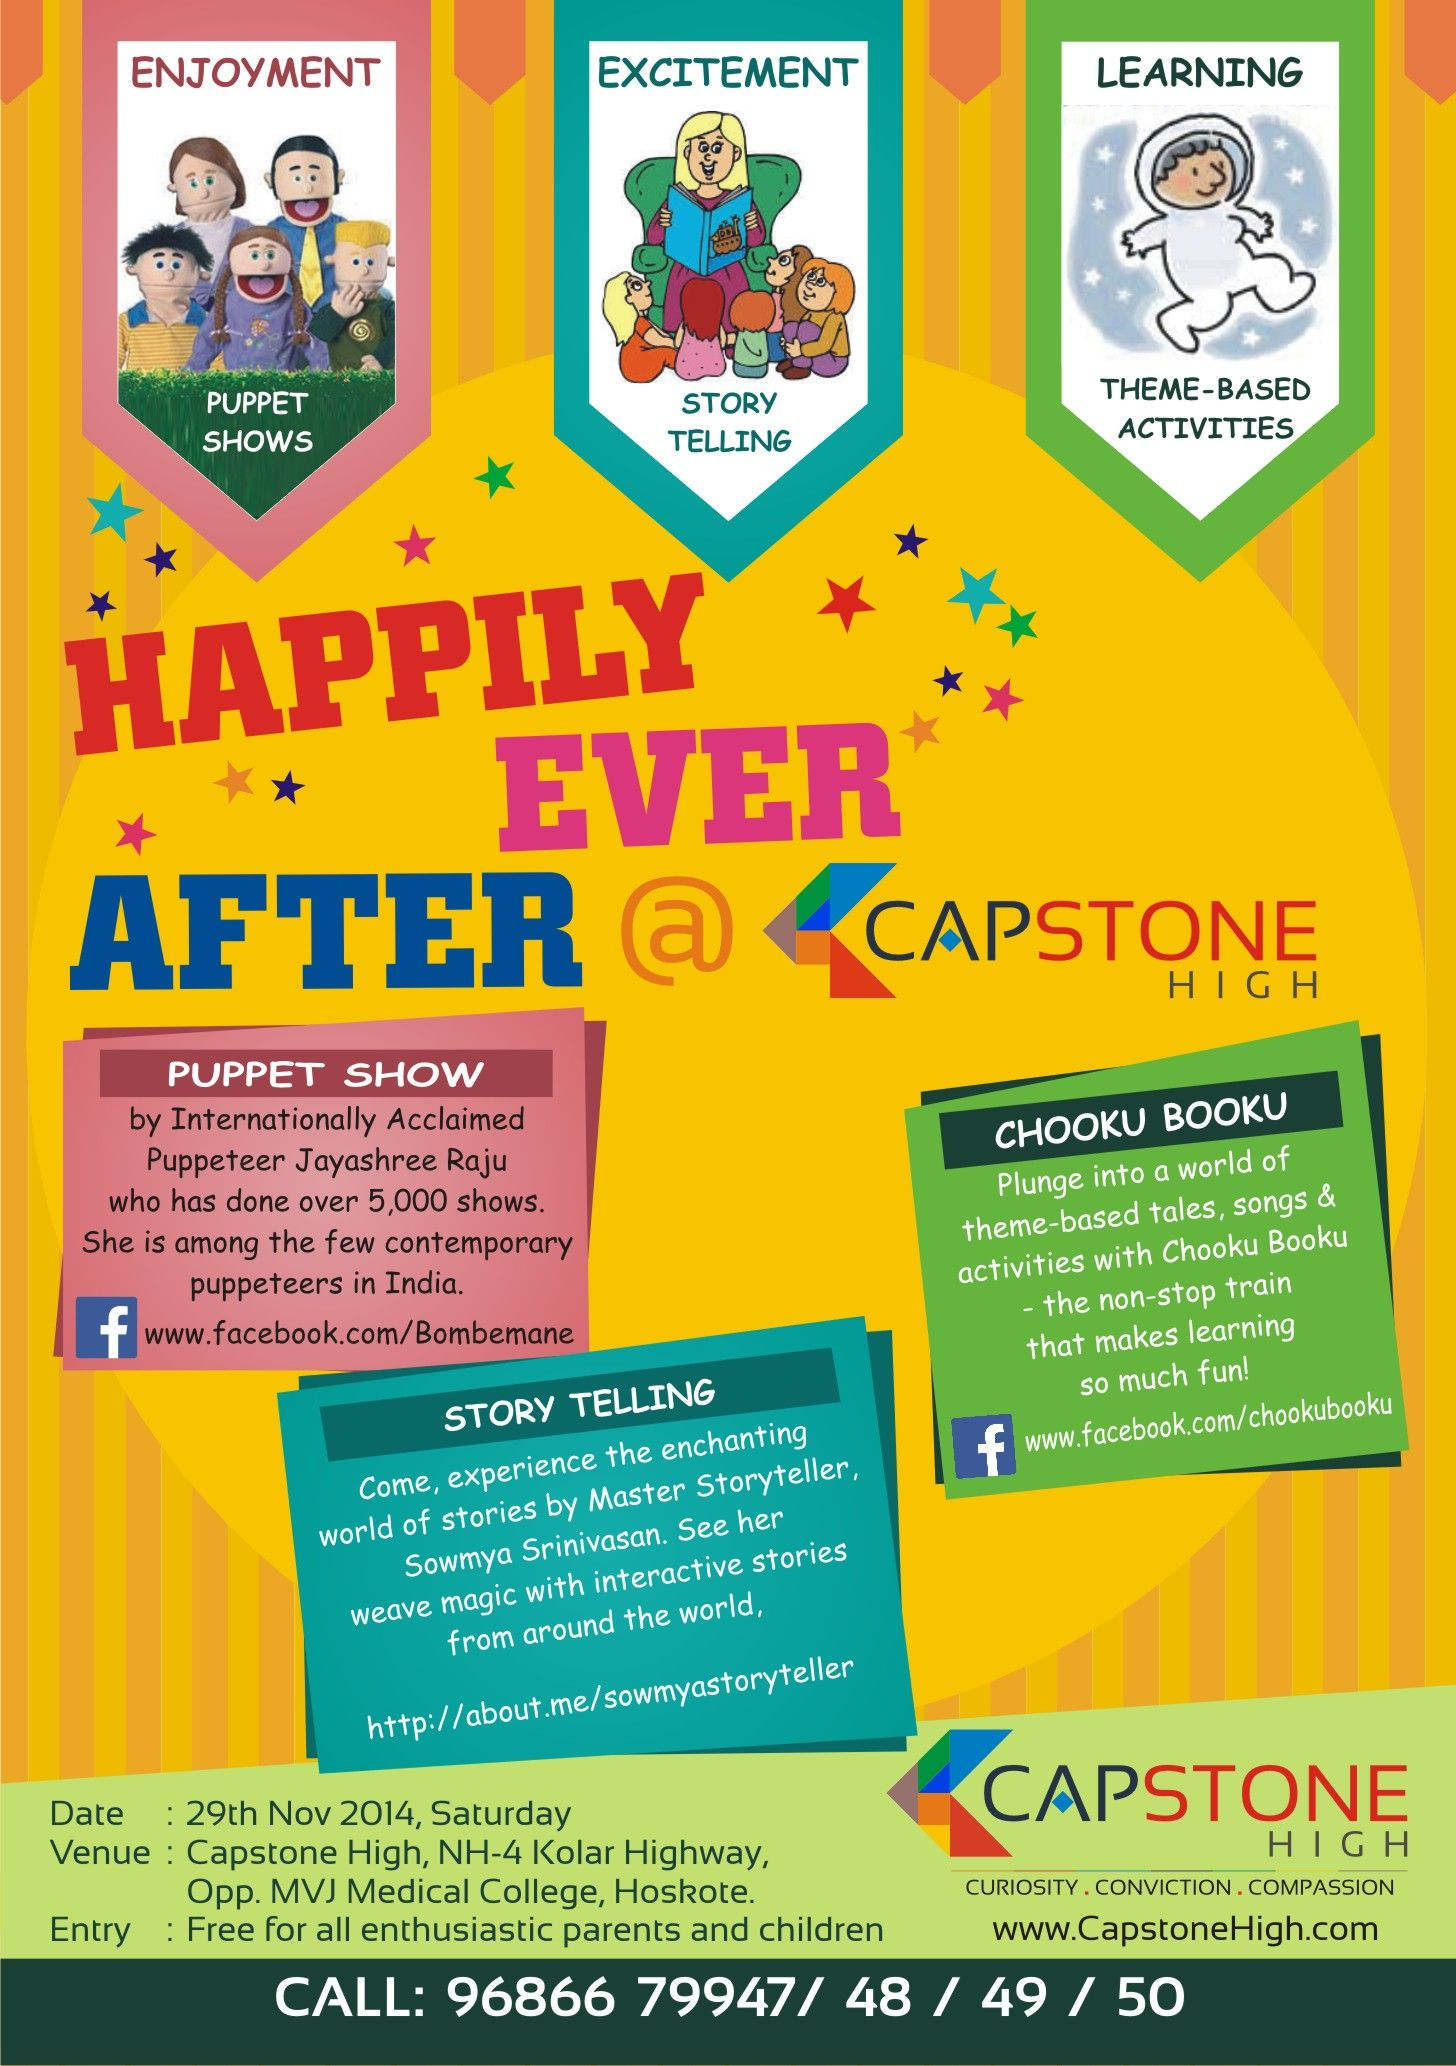 Fun weekend @ Capstone High. Dont miss it! Pre-register NOW!!!